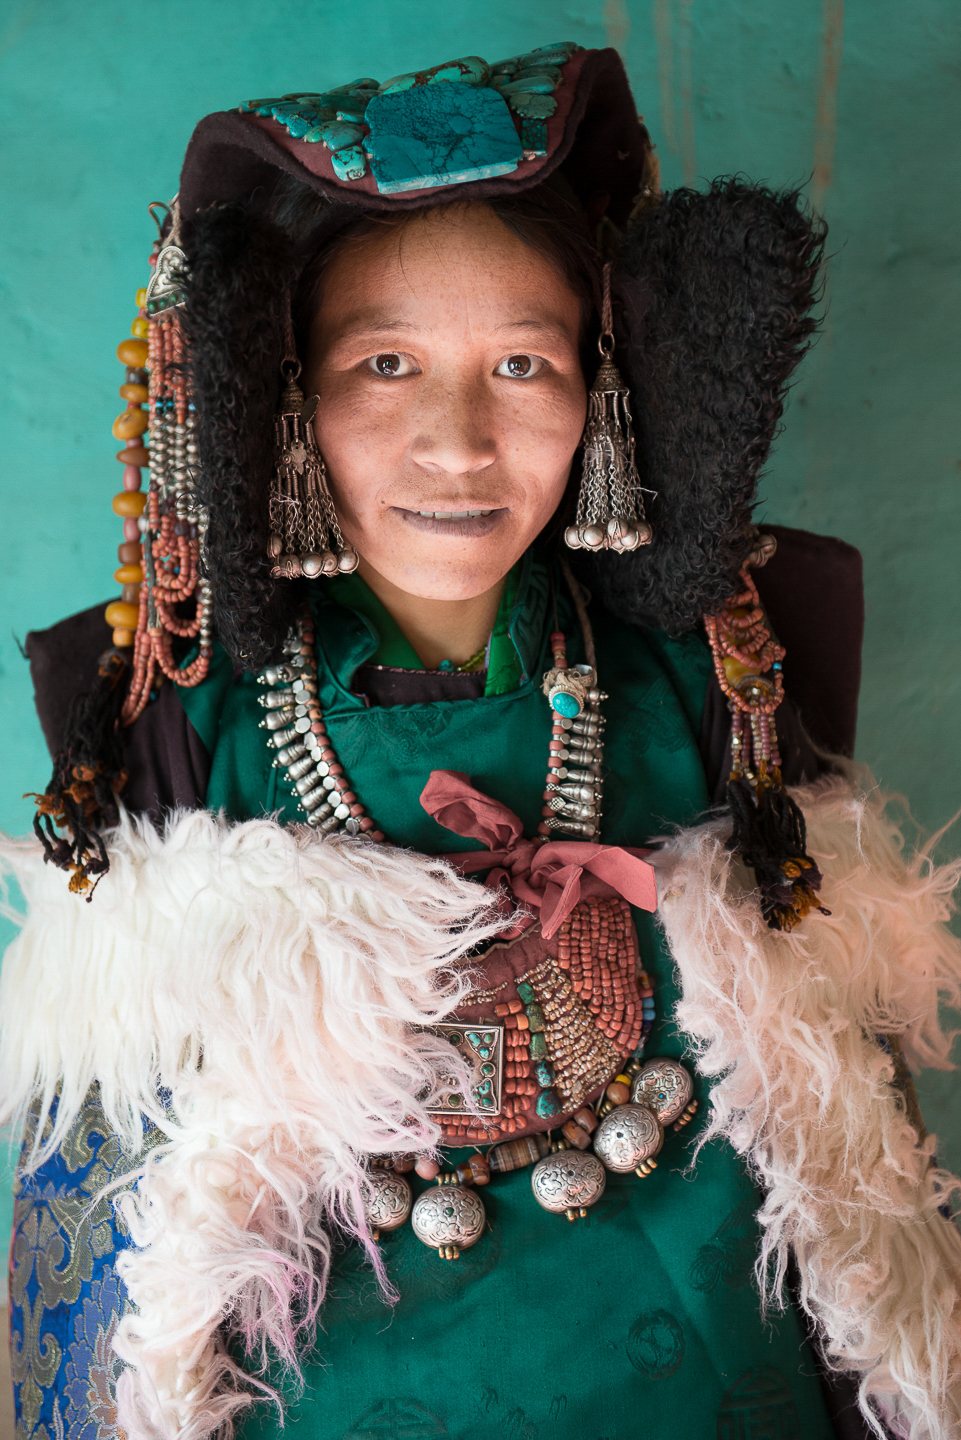 Stanzin Dayskon poses for a portrait wearing traditional Tibetan regalia. People in the village are of ethnic Tibetan-Mon origin and practice Tibetan Buddhism. Zanskar has remained isolated from the world for centuries and continue to live in in autarky. Over the centuries Zanskar has had zero population growth due to the traditional practice of polyandrous marriage where women take in multiple men as partner. However, the practice has died in the last few decades.